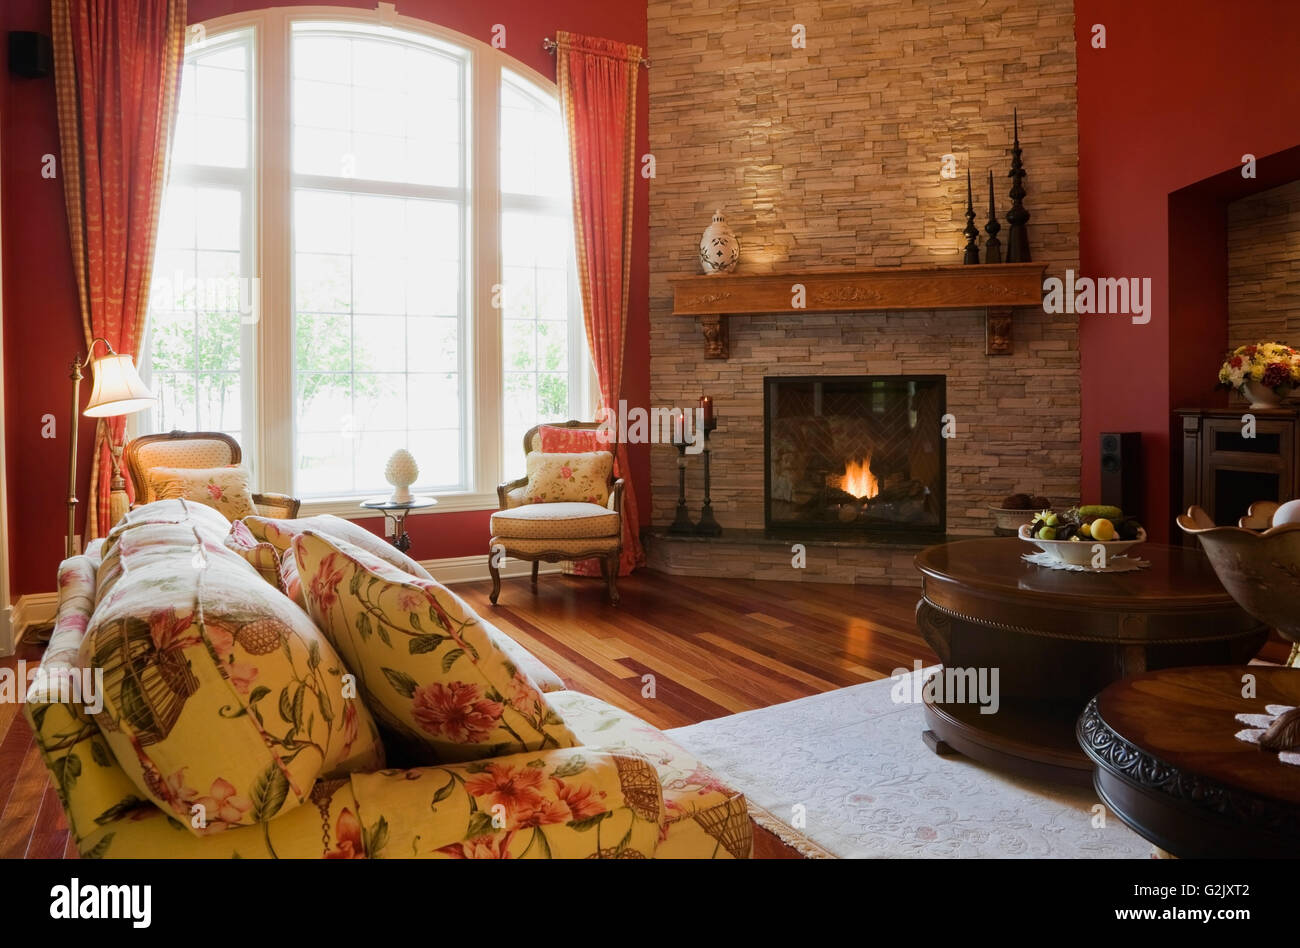 living room flowery upholstered sofa chairs lit gas fireplace inside